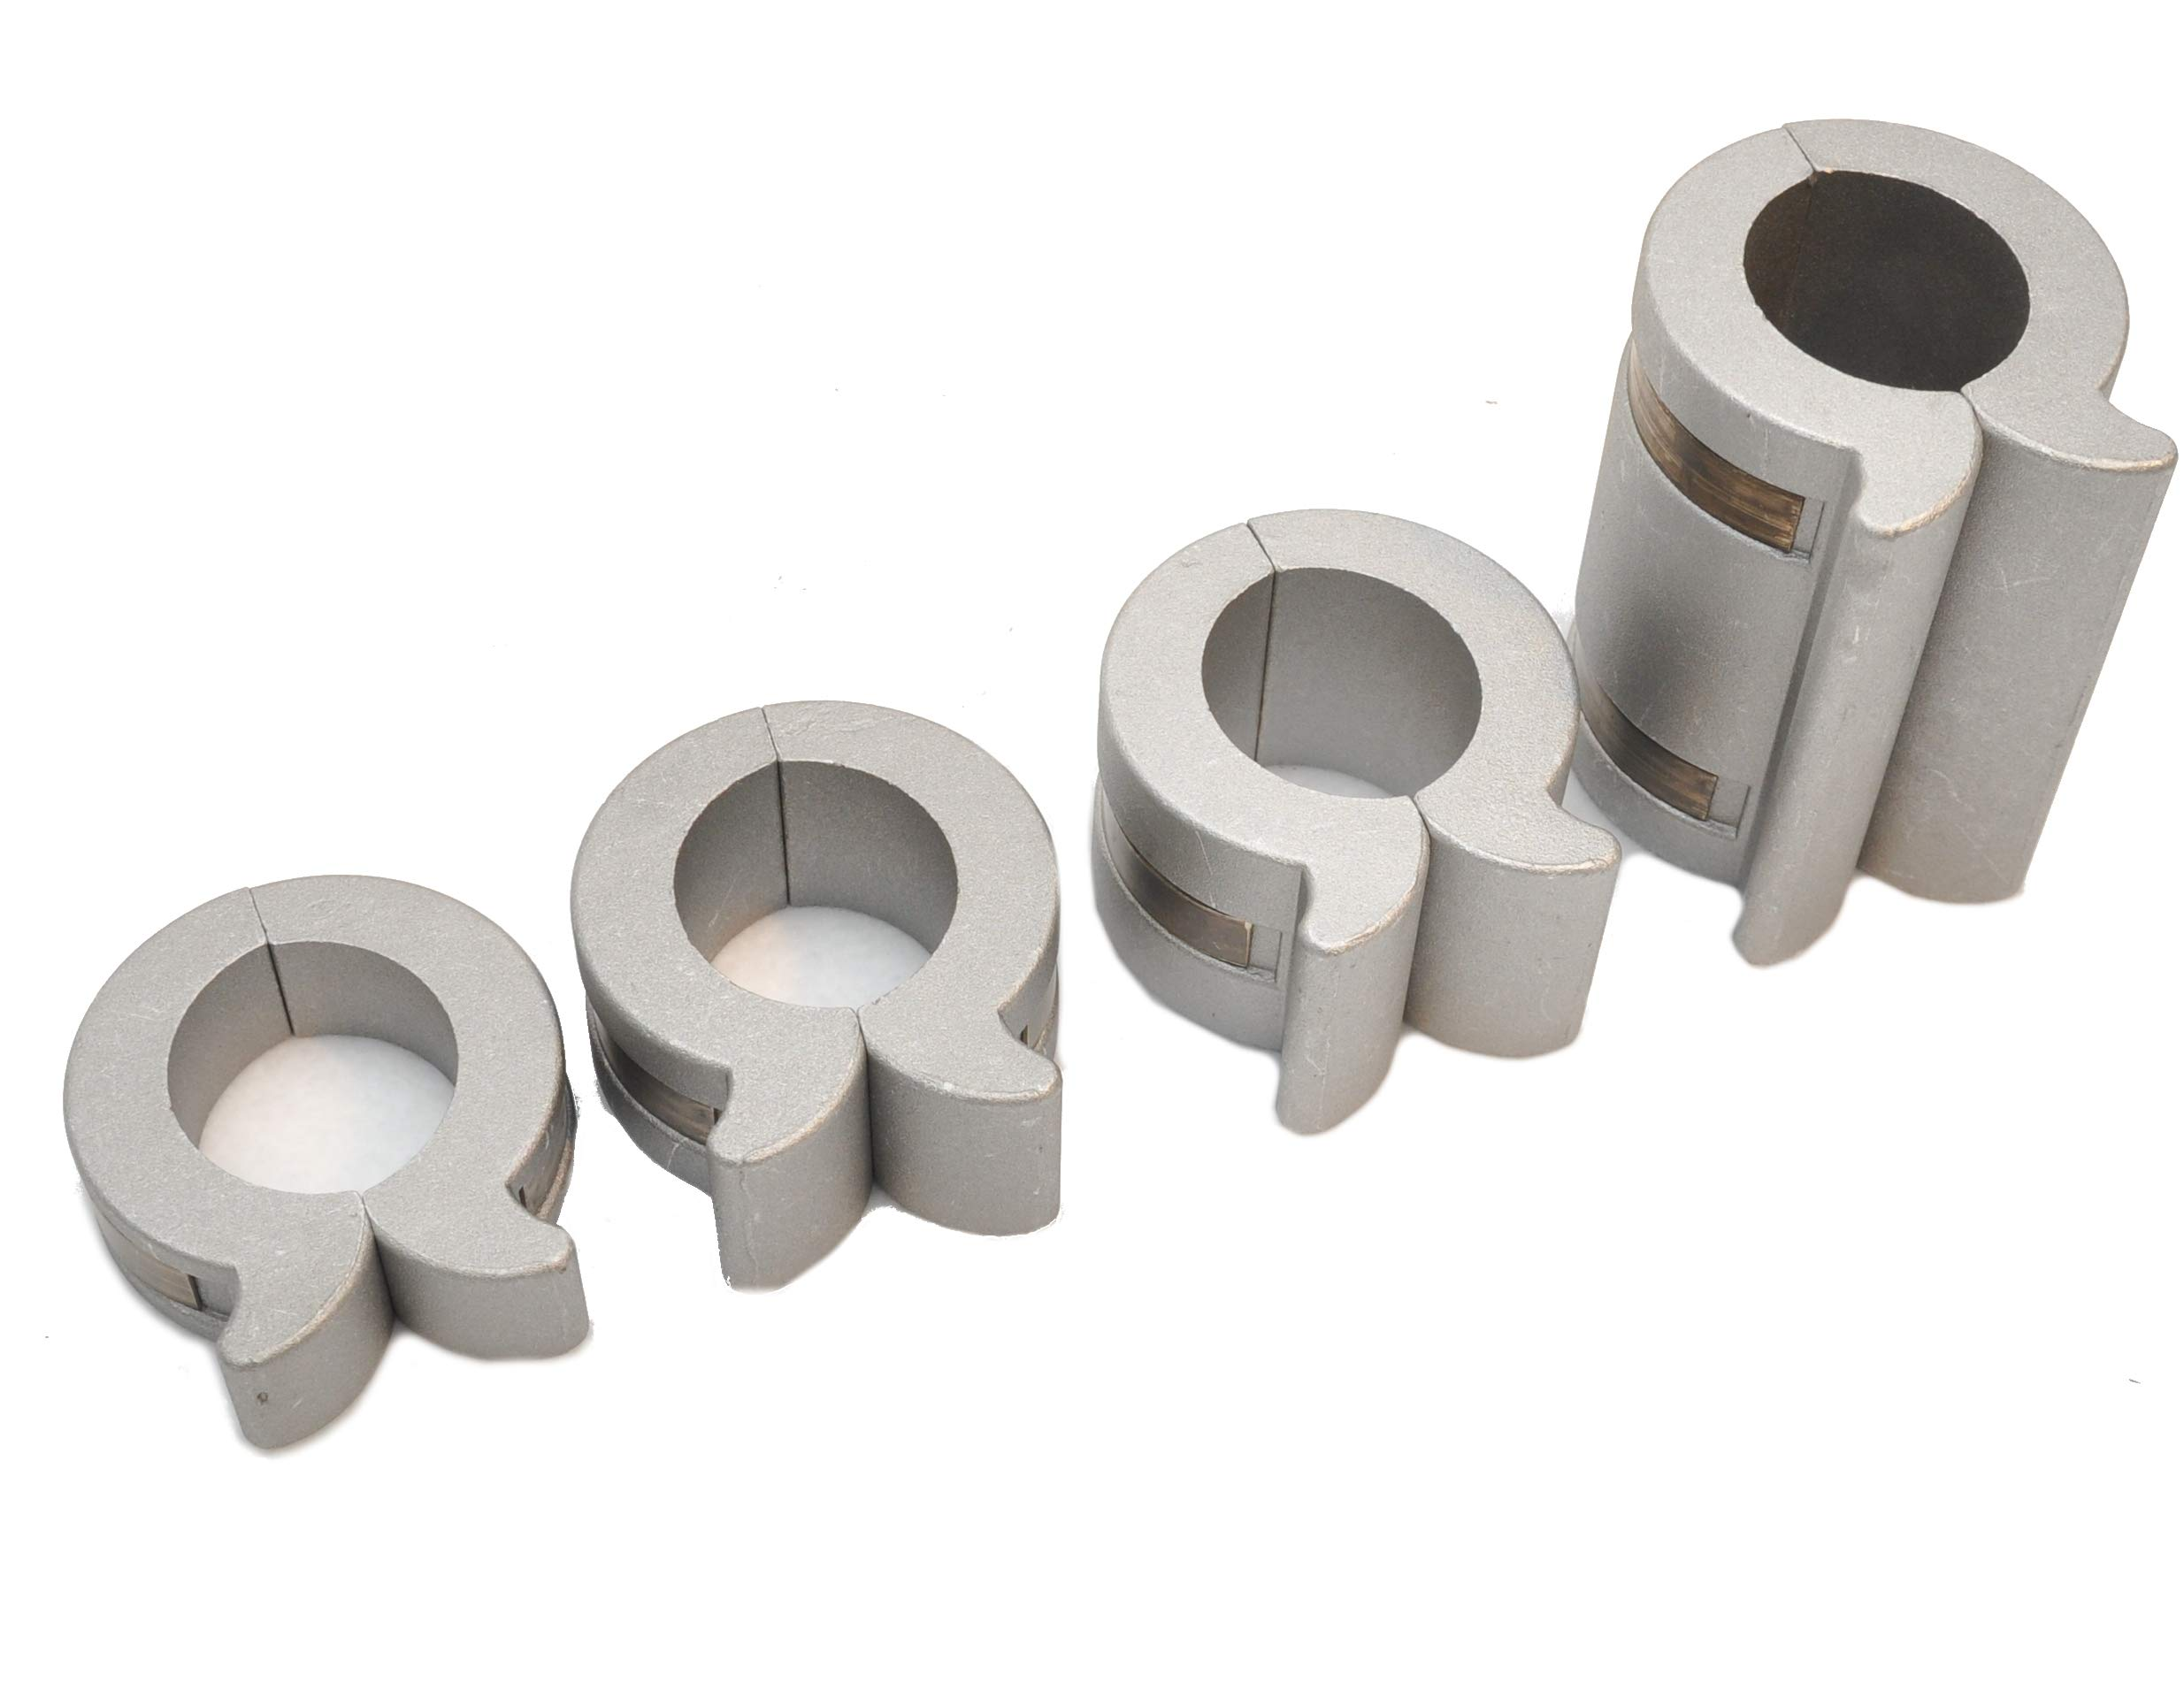 8.5'' 4 Piece Set of Hydraulic Cylinder Stroke Reducer Control Blocks for 1.75'' to 2'' Rods